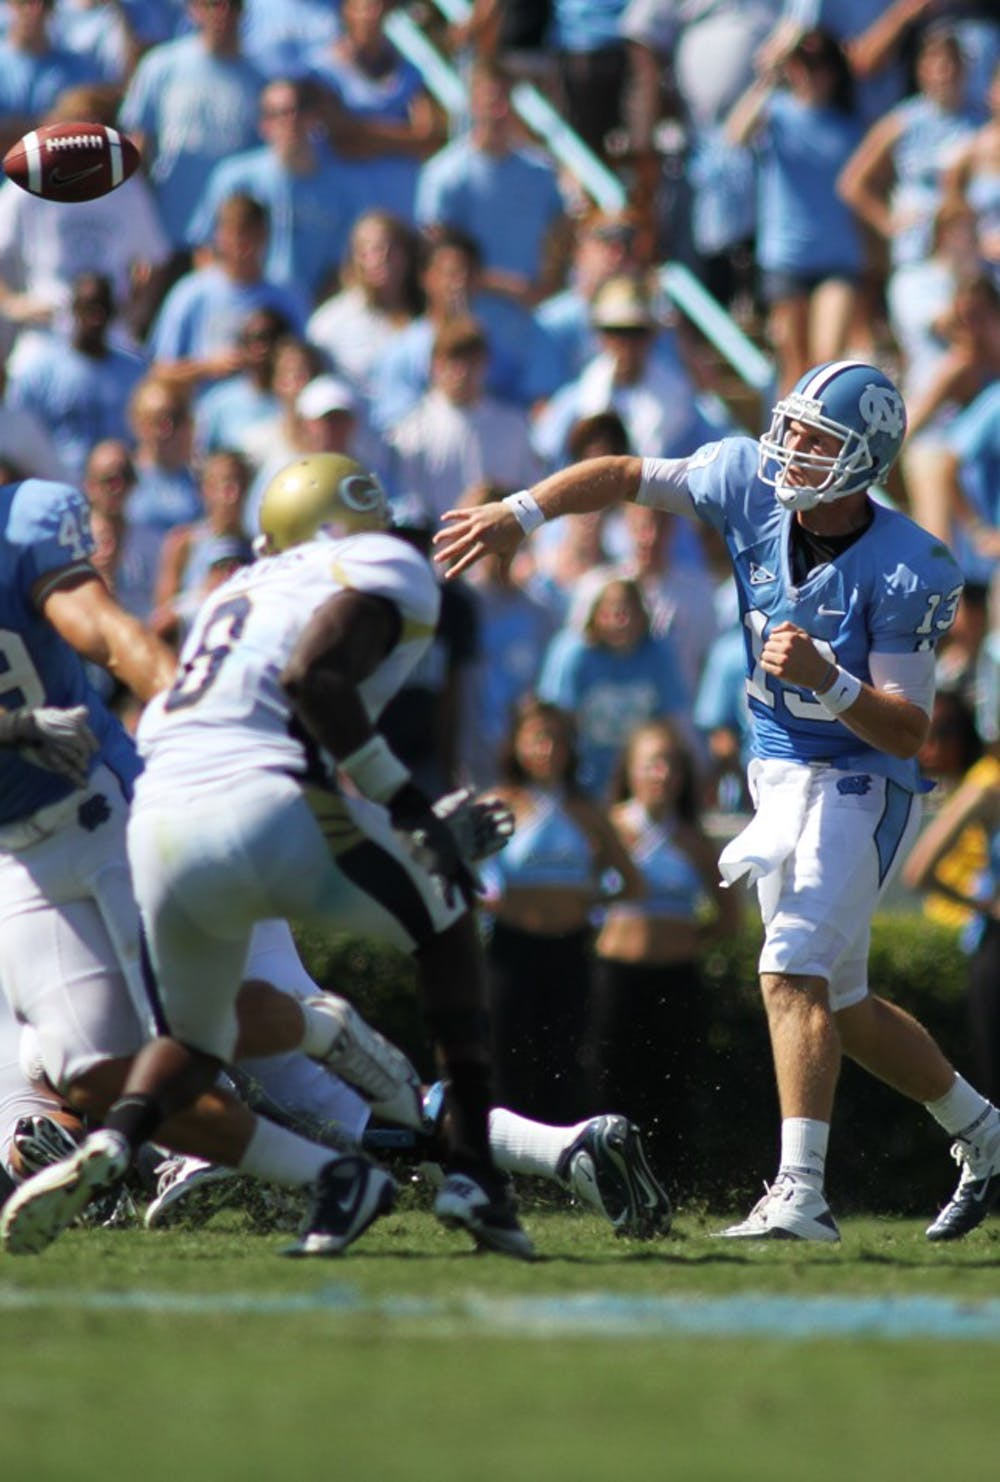 T.J. Yates threw for 221 yards in UNC's last meet with Rutgers two years ago when he had future NFL receivers Brandon Tate and Hakeem Nicks.